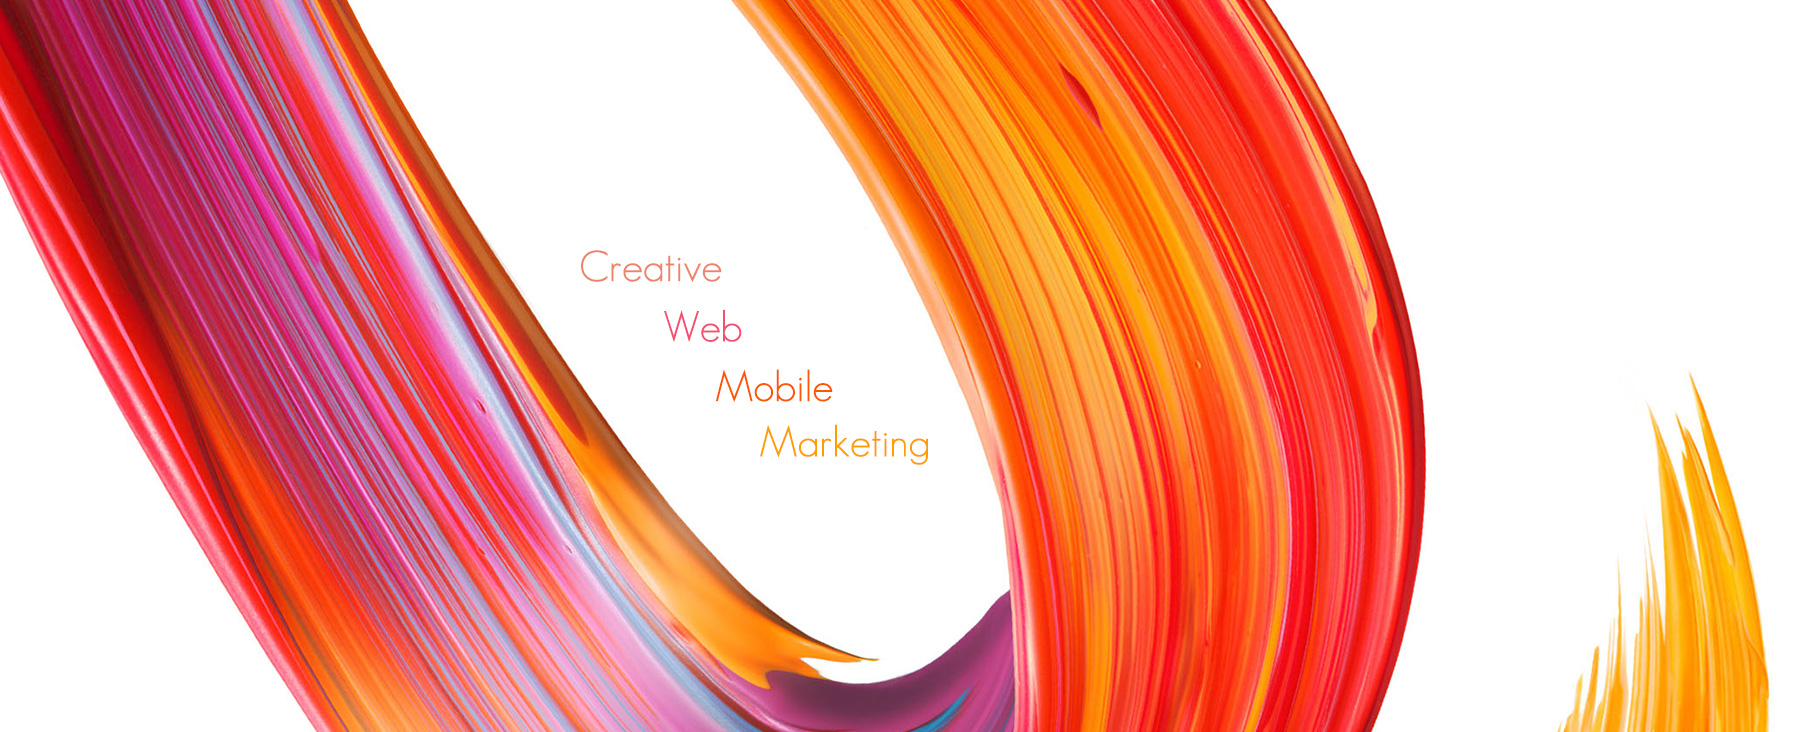 Web Design, Development, Applications, ecommerce, b2b, b2c, Thessaloniki